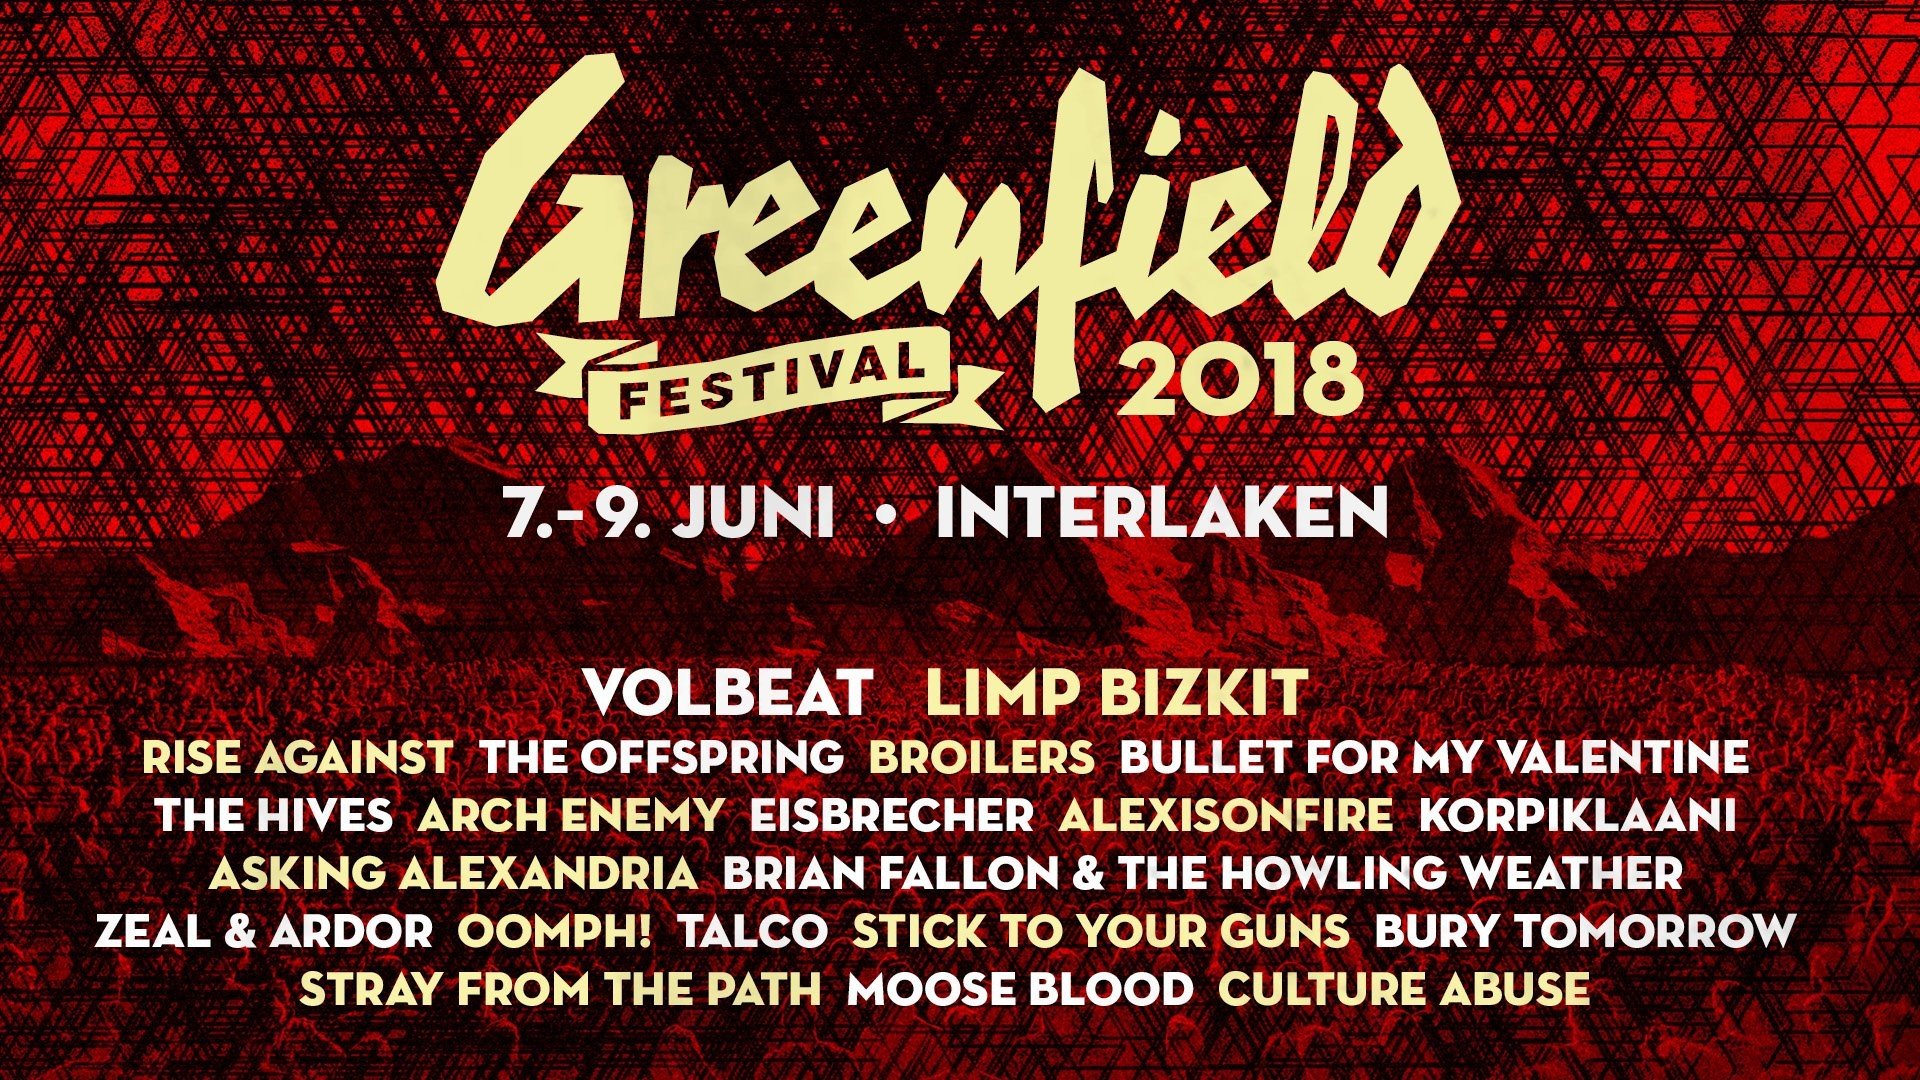 1920x1080 Greenfield Festival 2018 - Volbeat, Arch Enemy, Limp Bizkit, The Offspring  - Metalinside